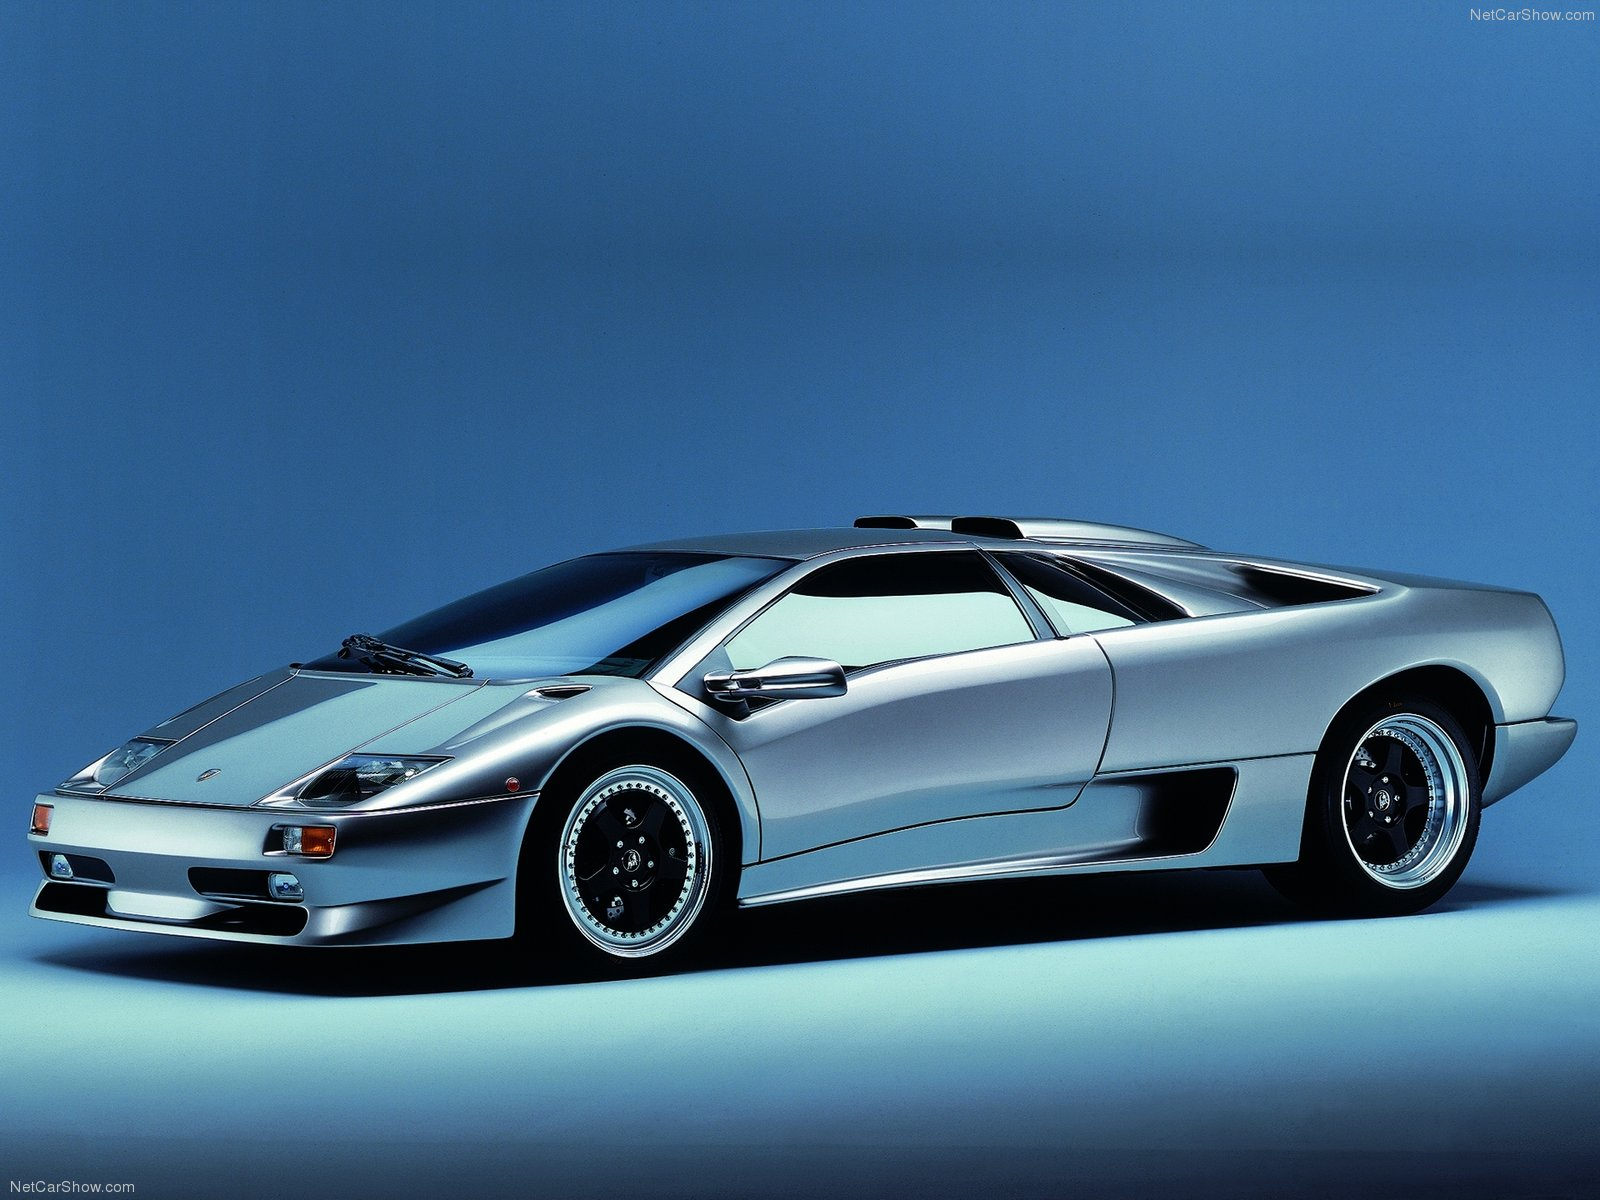 My Perfect Lamborghini Diablo 3dtuning Probably The Best Car